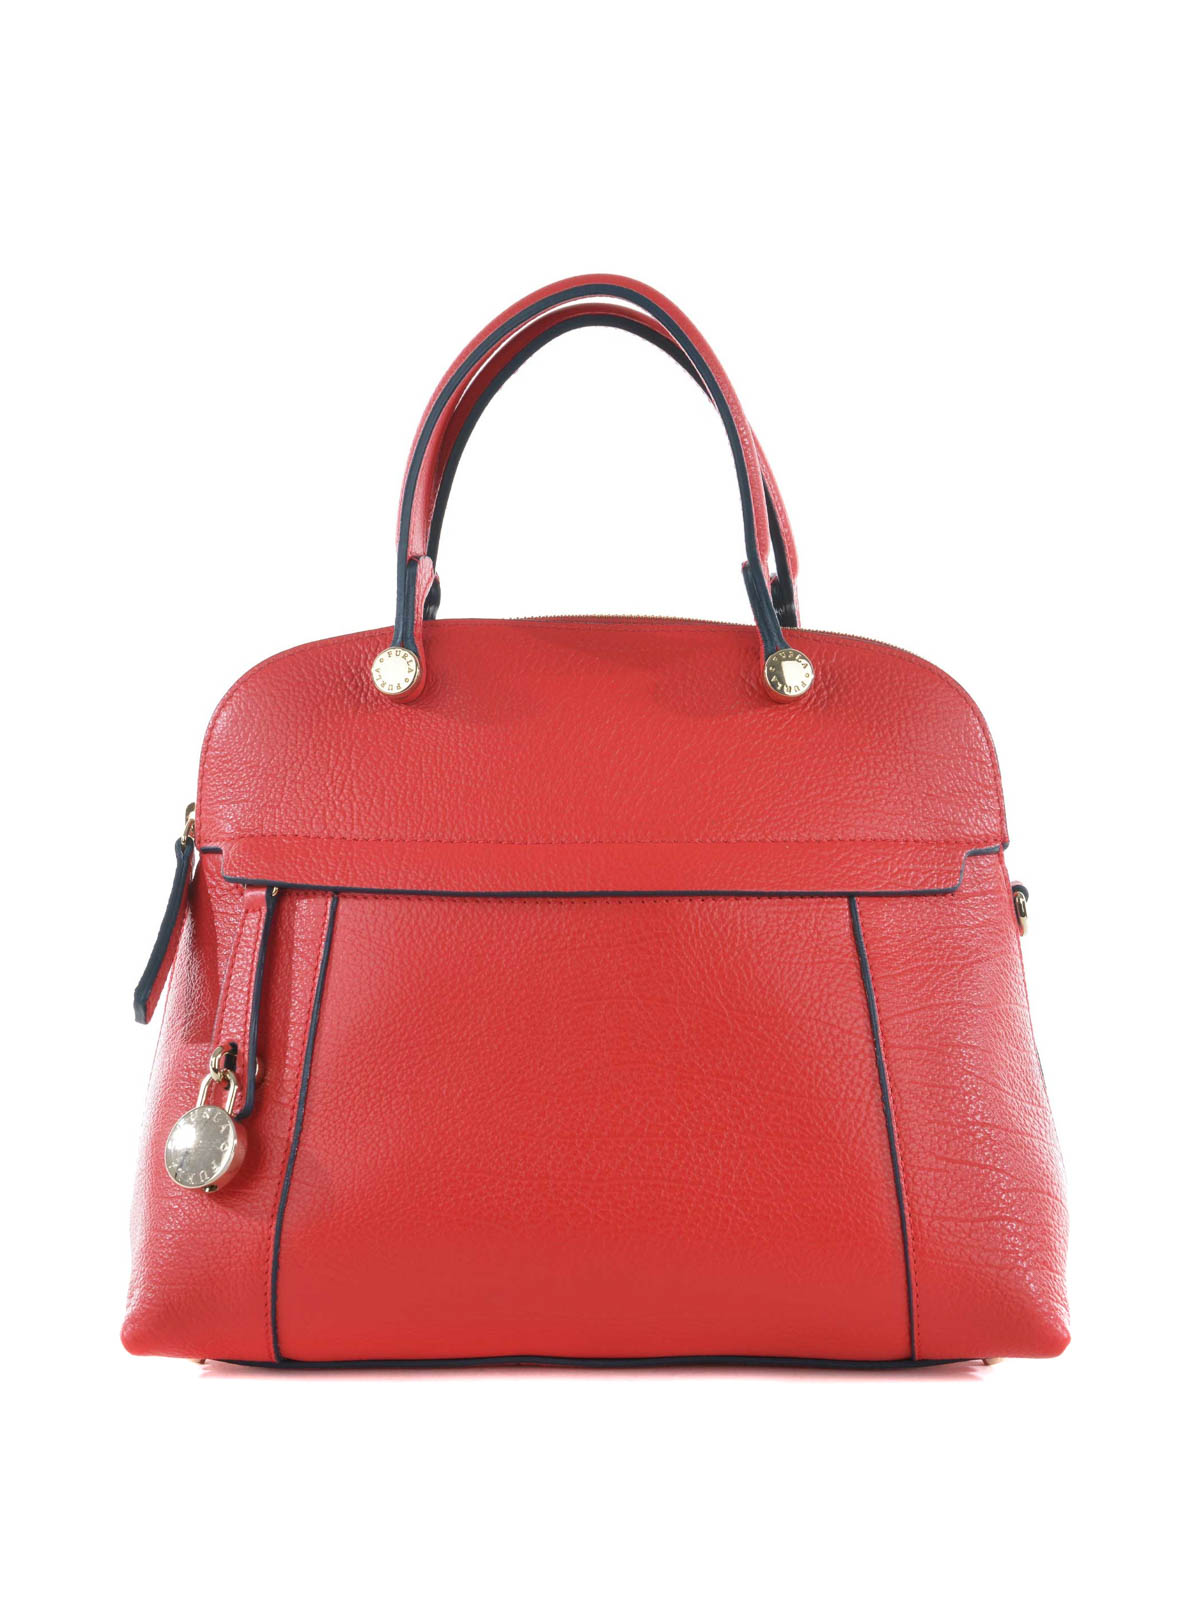 Furla - Piper hammered leather bag - bowling bags